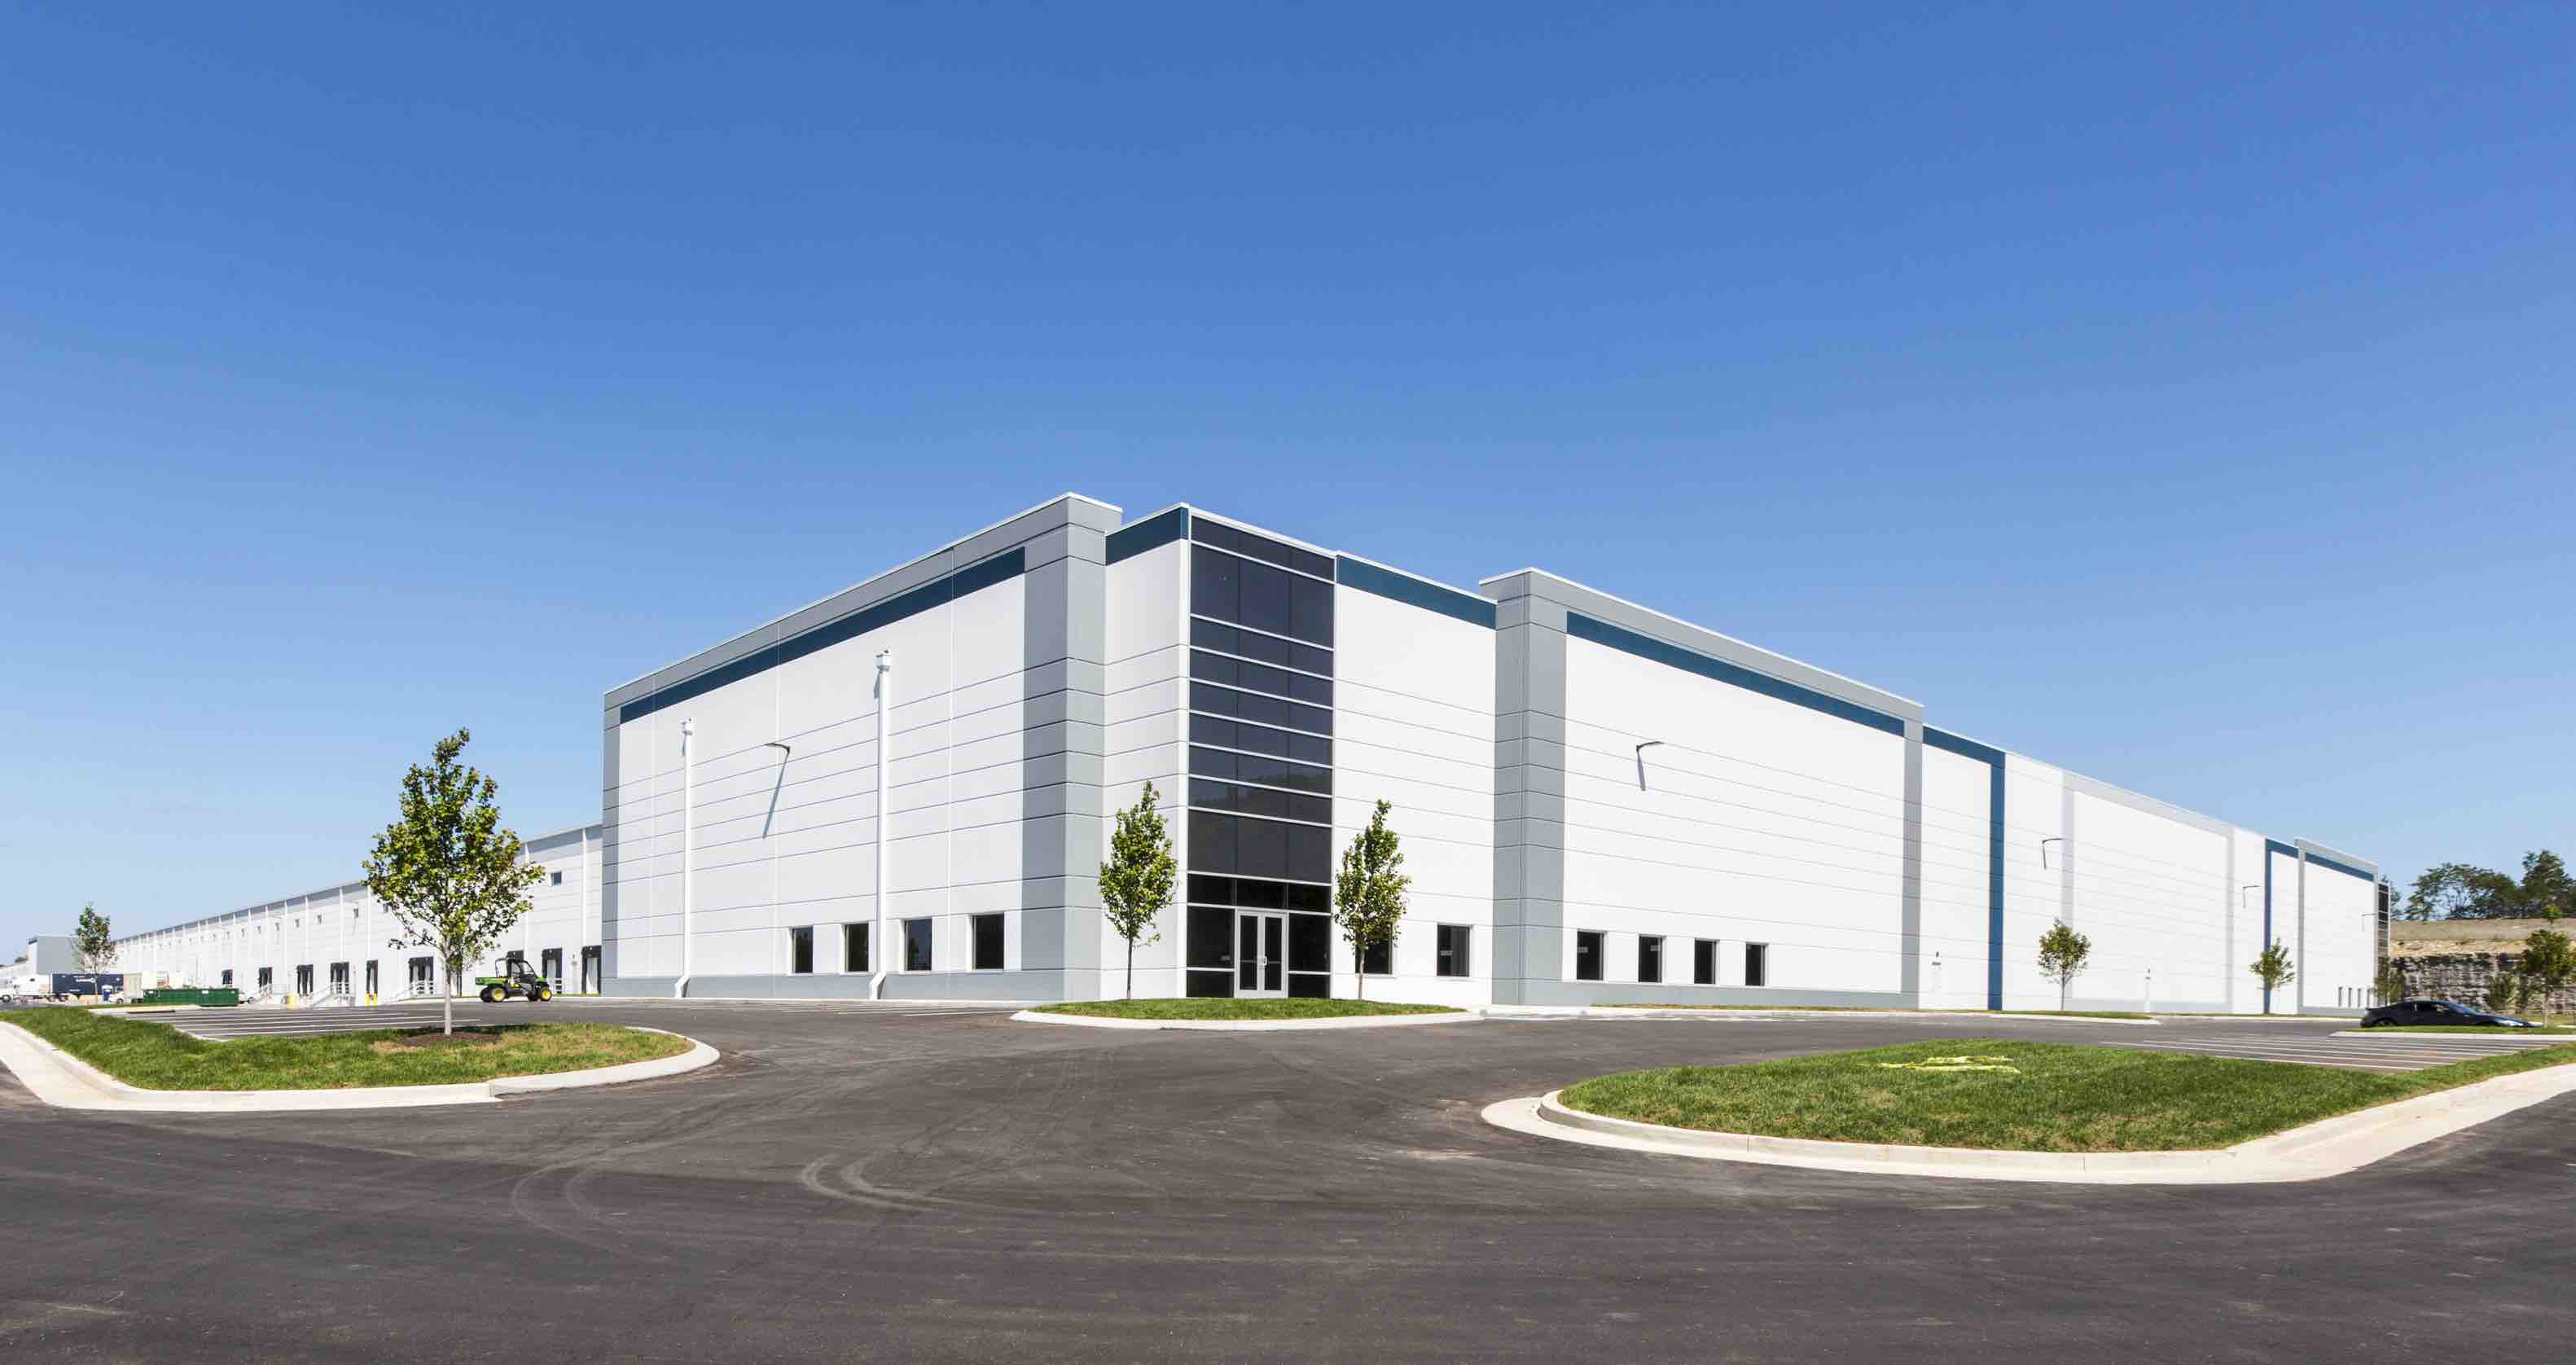 Itasca Based Premier Design Build Group Llc Completes Construction Of Massive Warehouse In